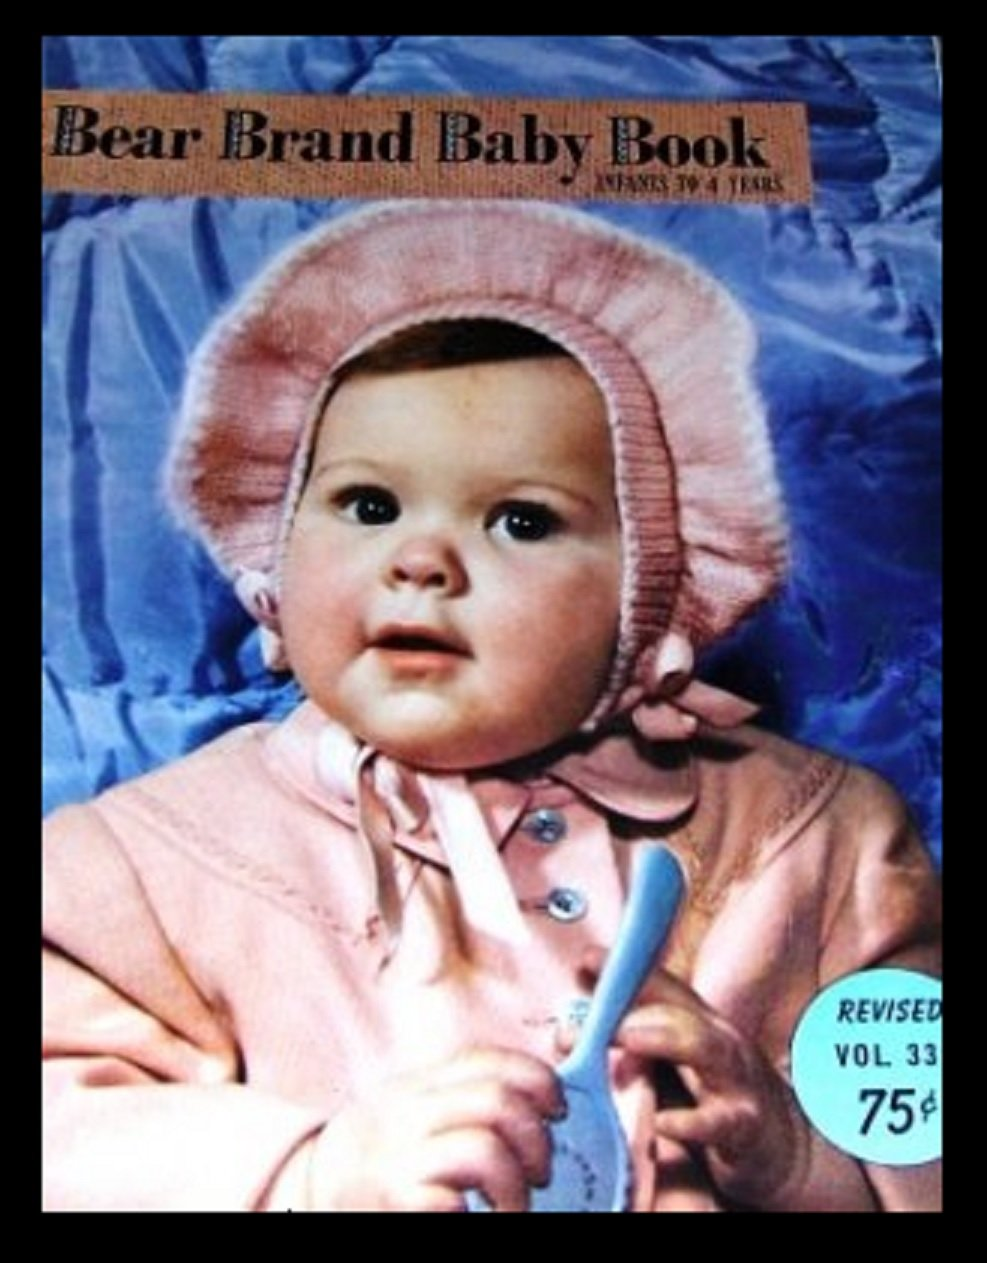 Vintage Knitting Pattern Bear Brand Baby Book Vol 339 Infants to 4 years.